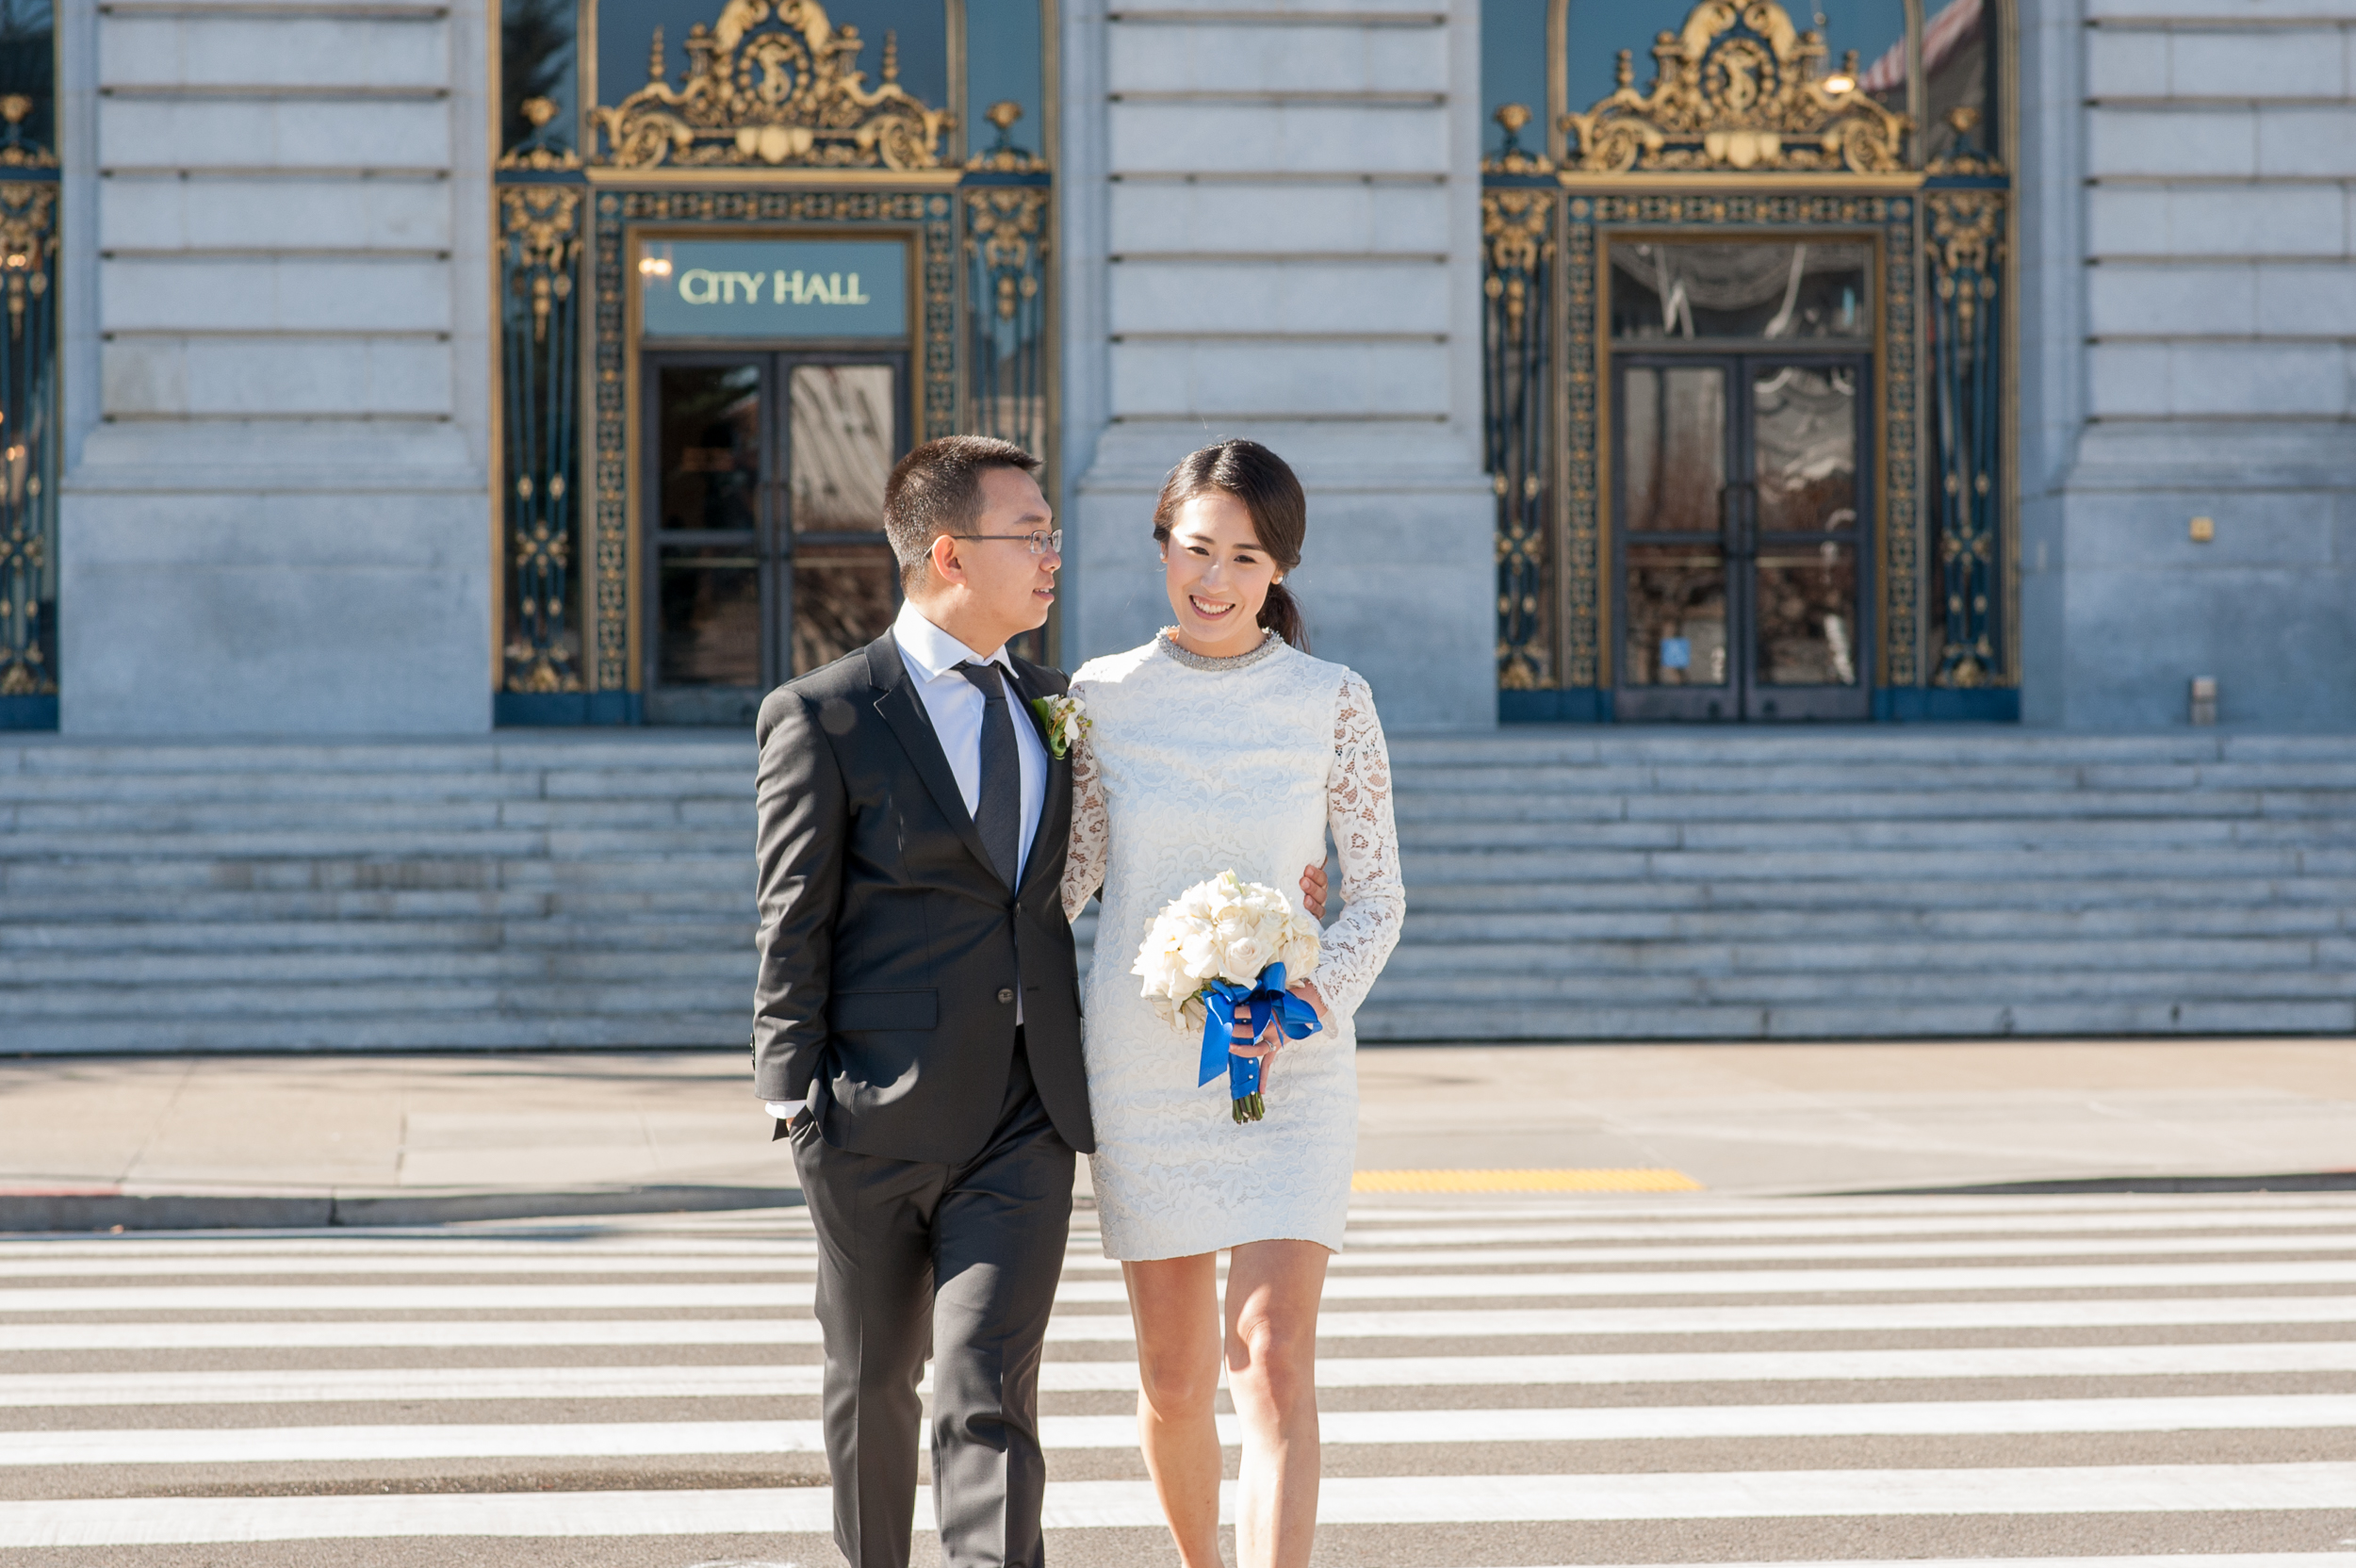 san-francisco-city-hall-elopement-photographer-jk0032.jpg